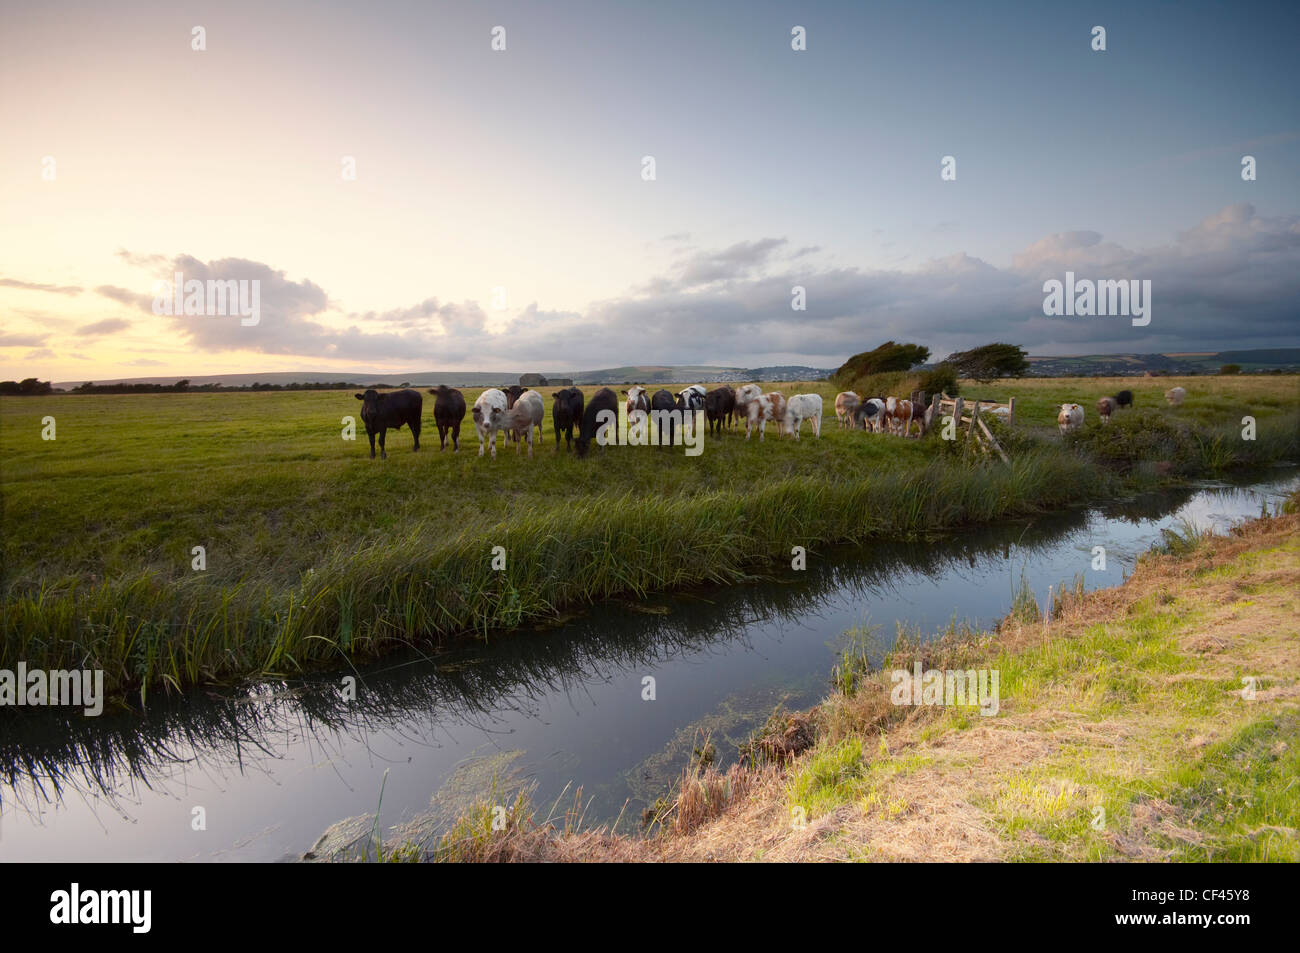 Cattle grazing beside a drainage ditch on the edge of Braunton marshes in North Devon at sunset. Stock Photo